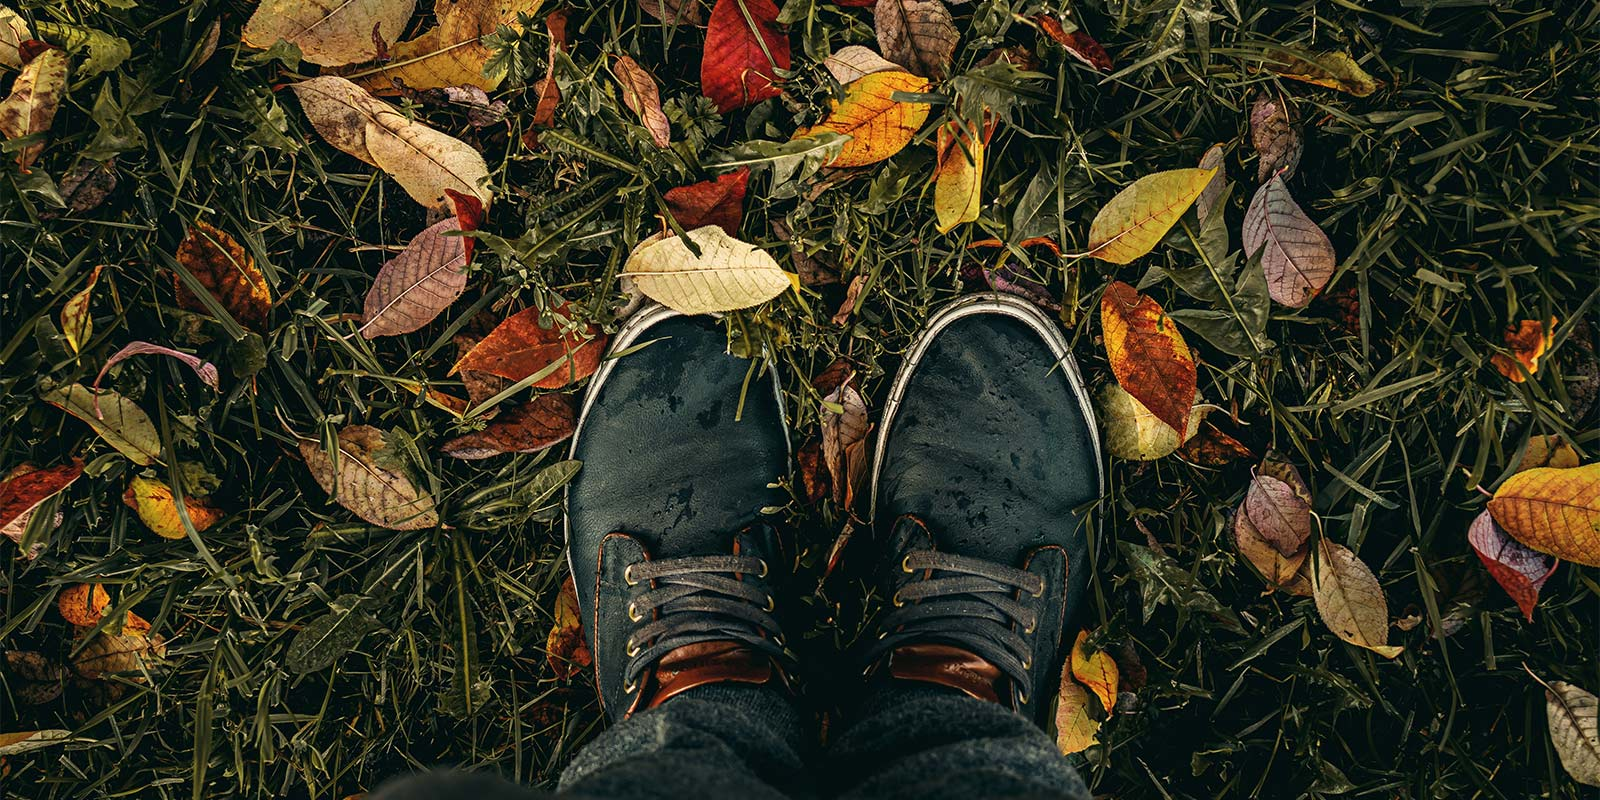 Man standing on fallen leaves